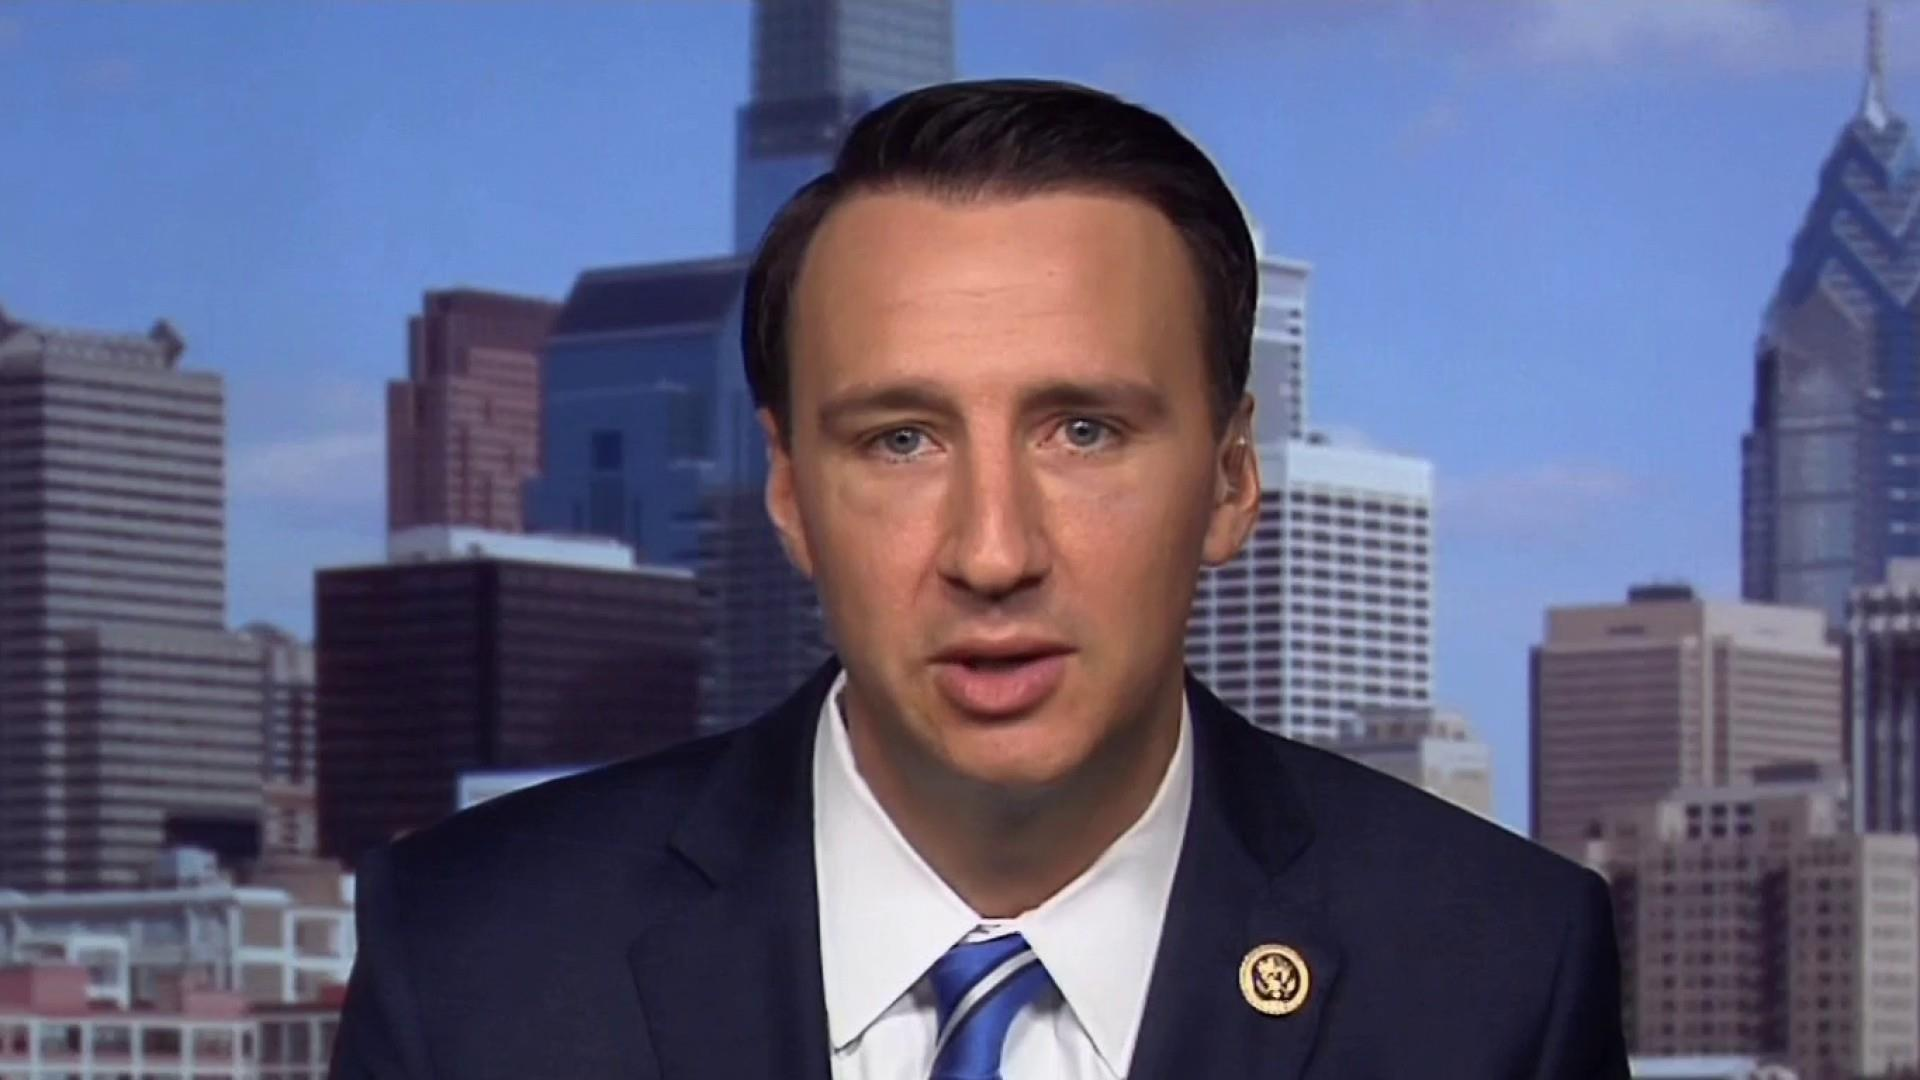 Rep. Costello on defending the President: 'it gets tiring'